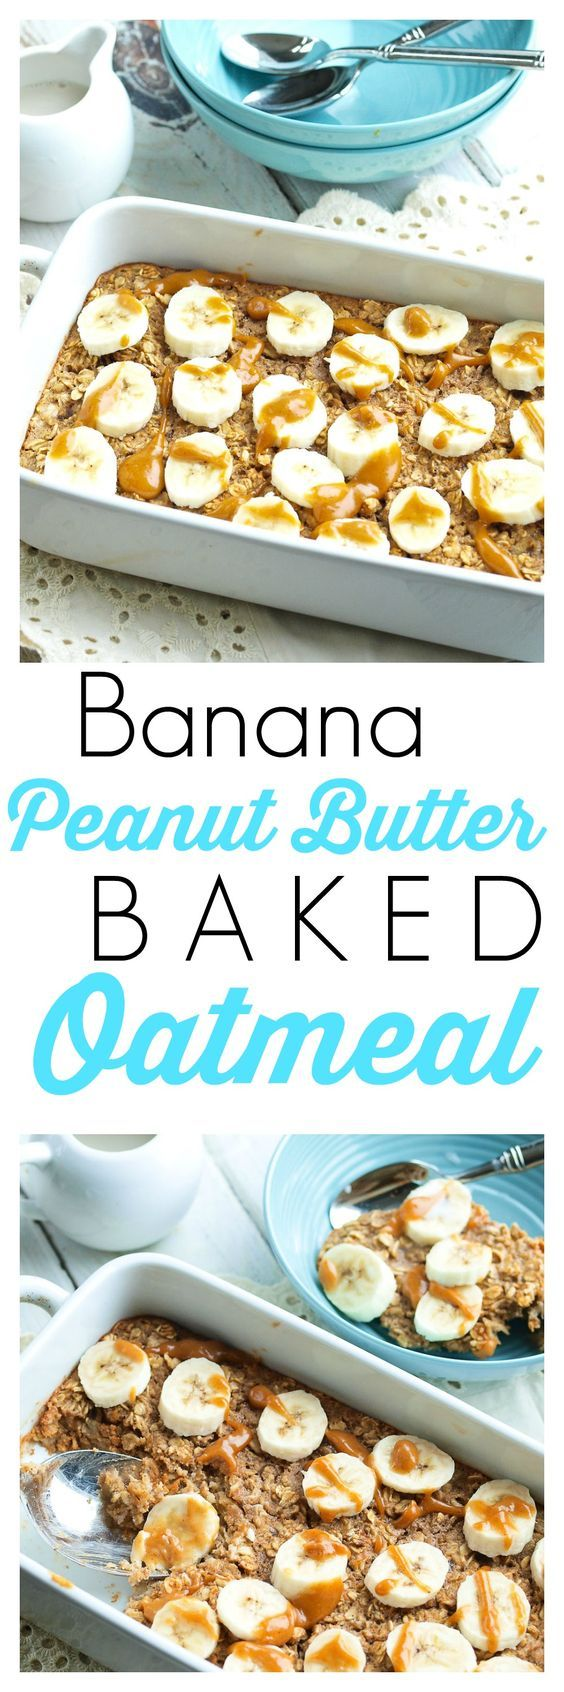 Banana Peanut Butter Baked Oatmeal Recipe.  This is a healthy breakfast recipe that is perfect for chilly mornings! Low sugar gluten-free and dairy-free.